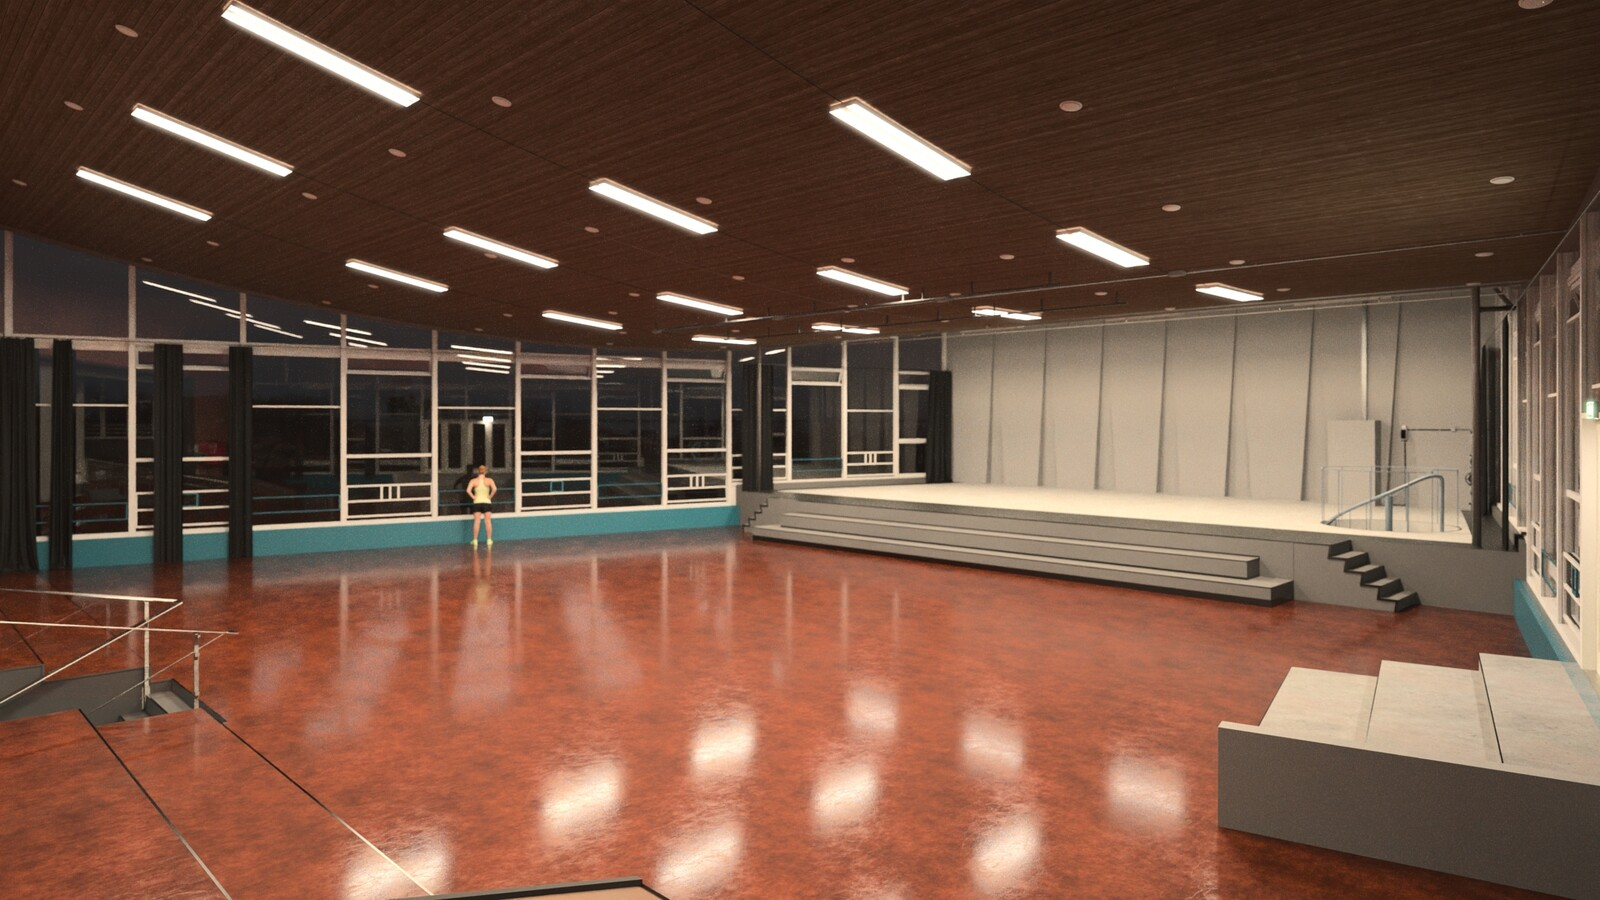 SketchUp 2021 + Thea Render V3 Broedplaats LELY (The Lely Incubator) Auditorium Amsterdam Showroom-Scene 20 17m49s HD1080 1536sp